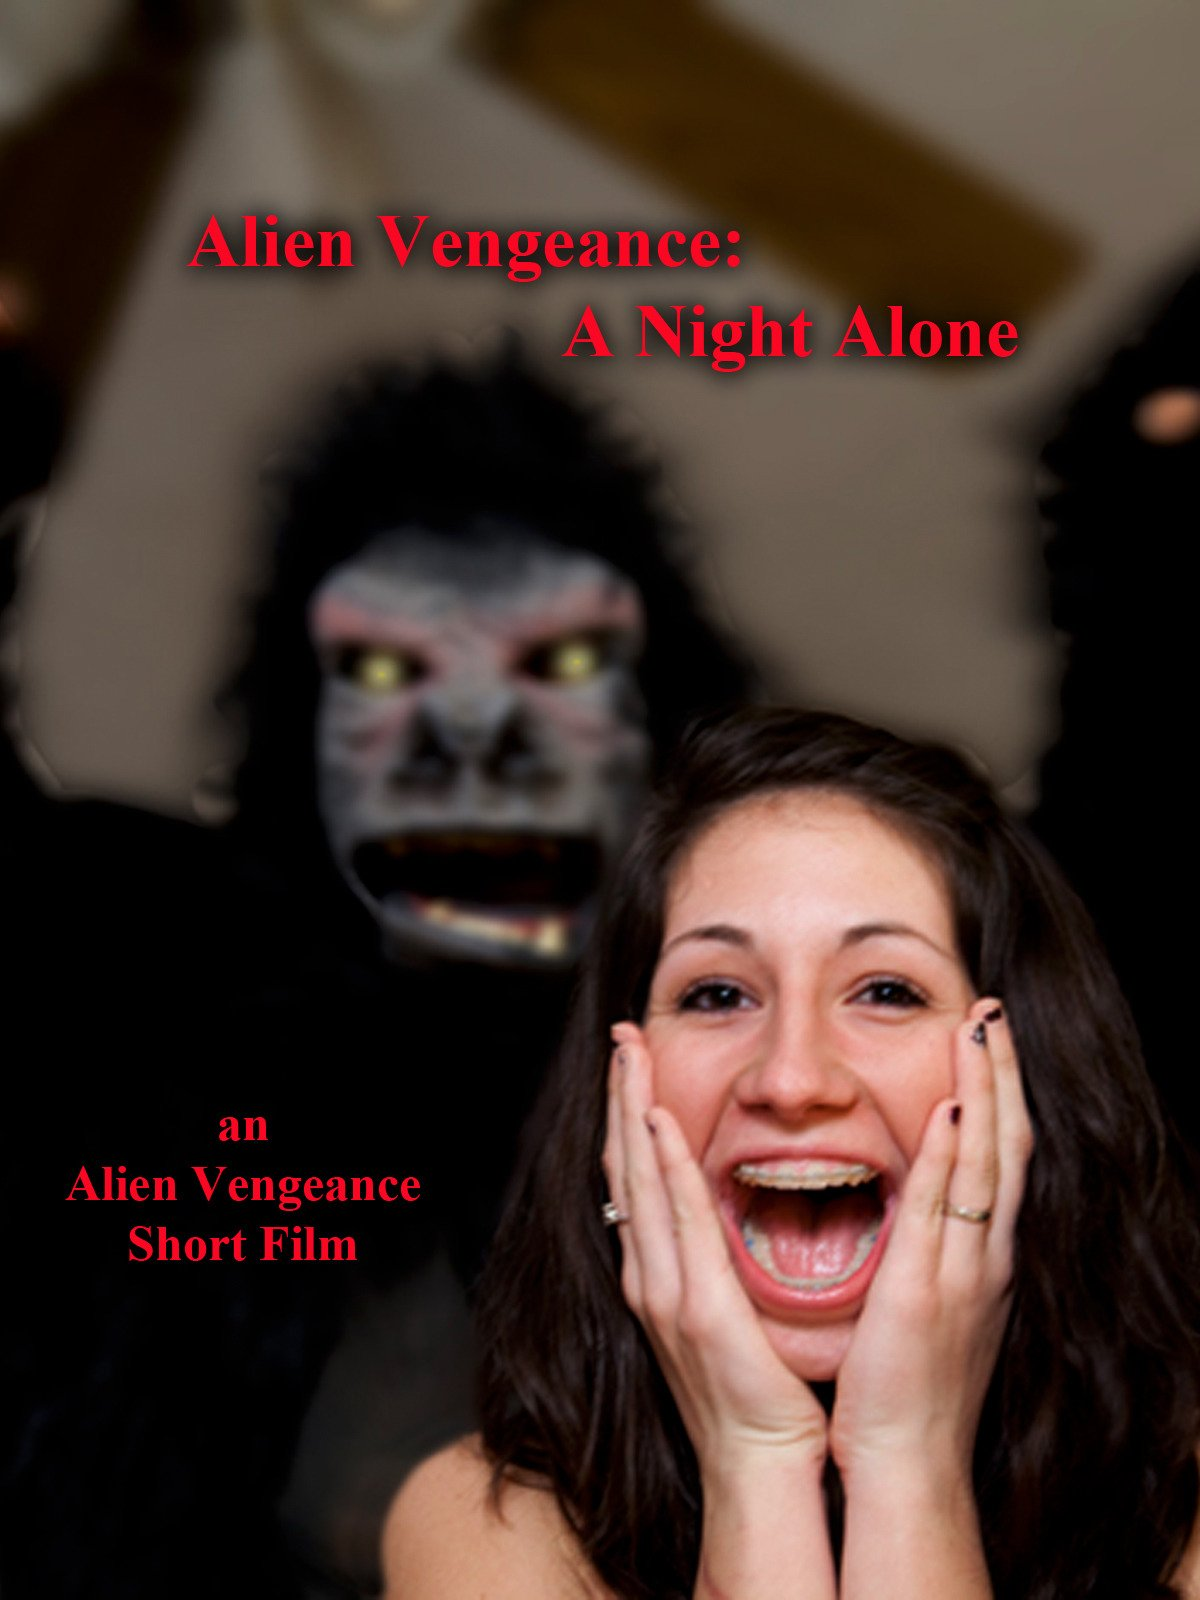 Alien Vengeance: A Night Alone